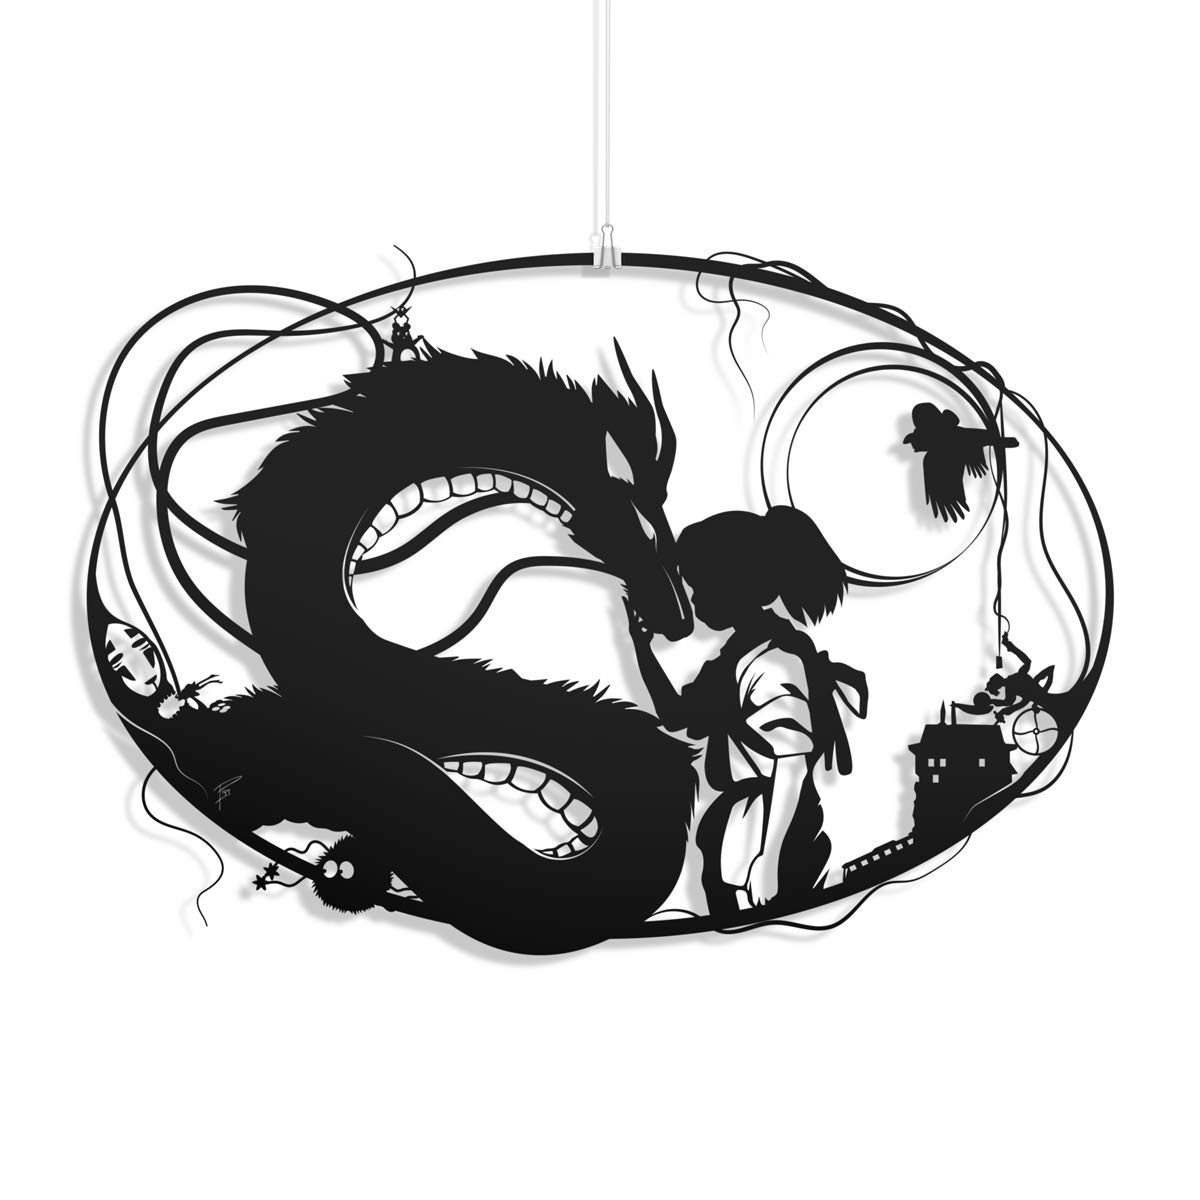 Amazon Com Spirited Away Unframed Studio Ghibli Haku And Chihiro Miyazaki No Face Fantasy Art Papercut Dragon Love Art Anniversary Gift Home Decor Handmade